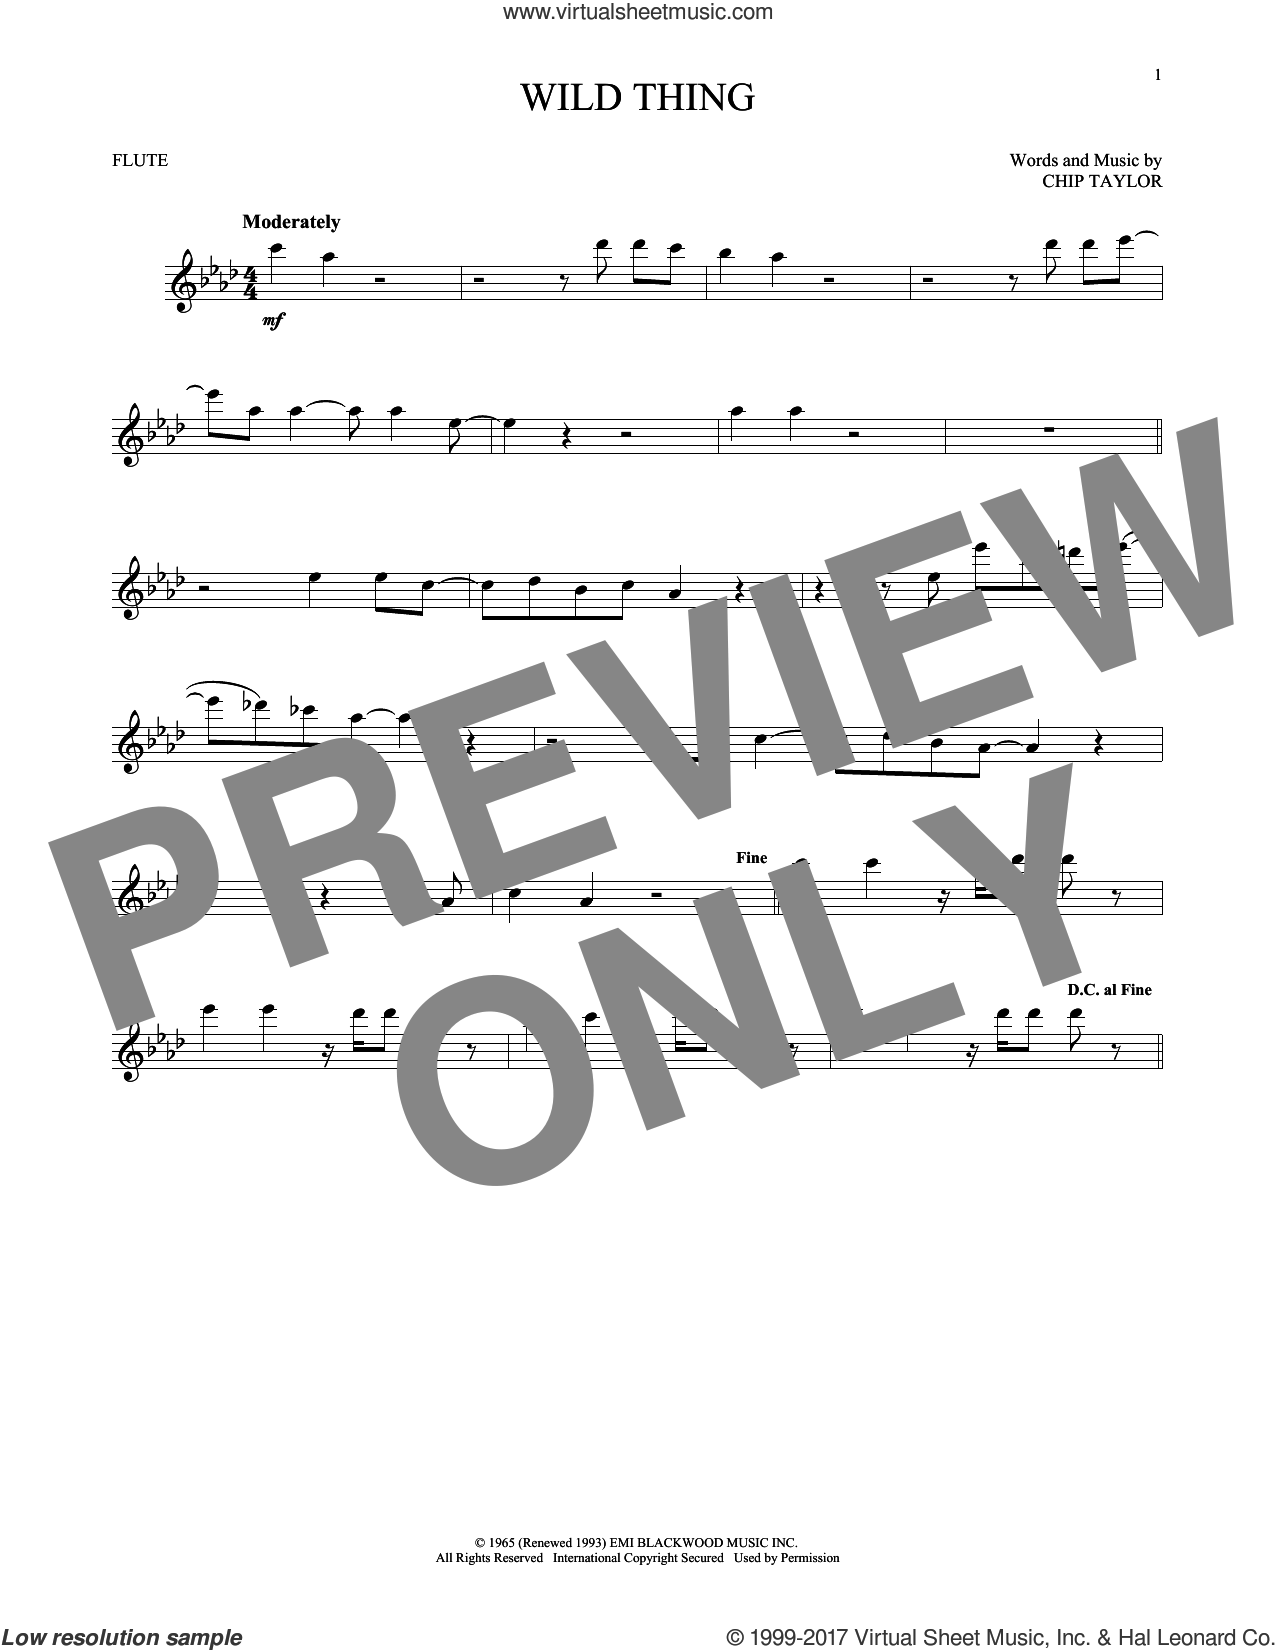 Wild Thing sheet music for flute solo by The Troggs and Chip Taylor, intermediate skill level